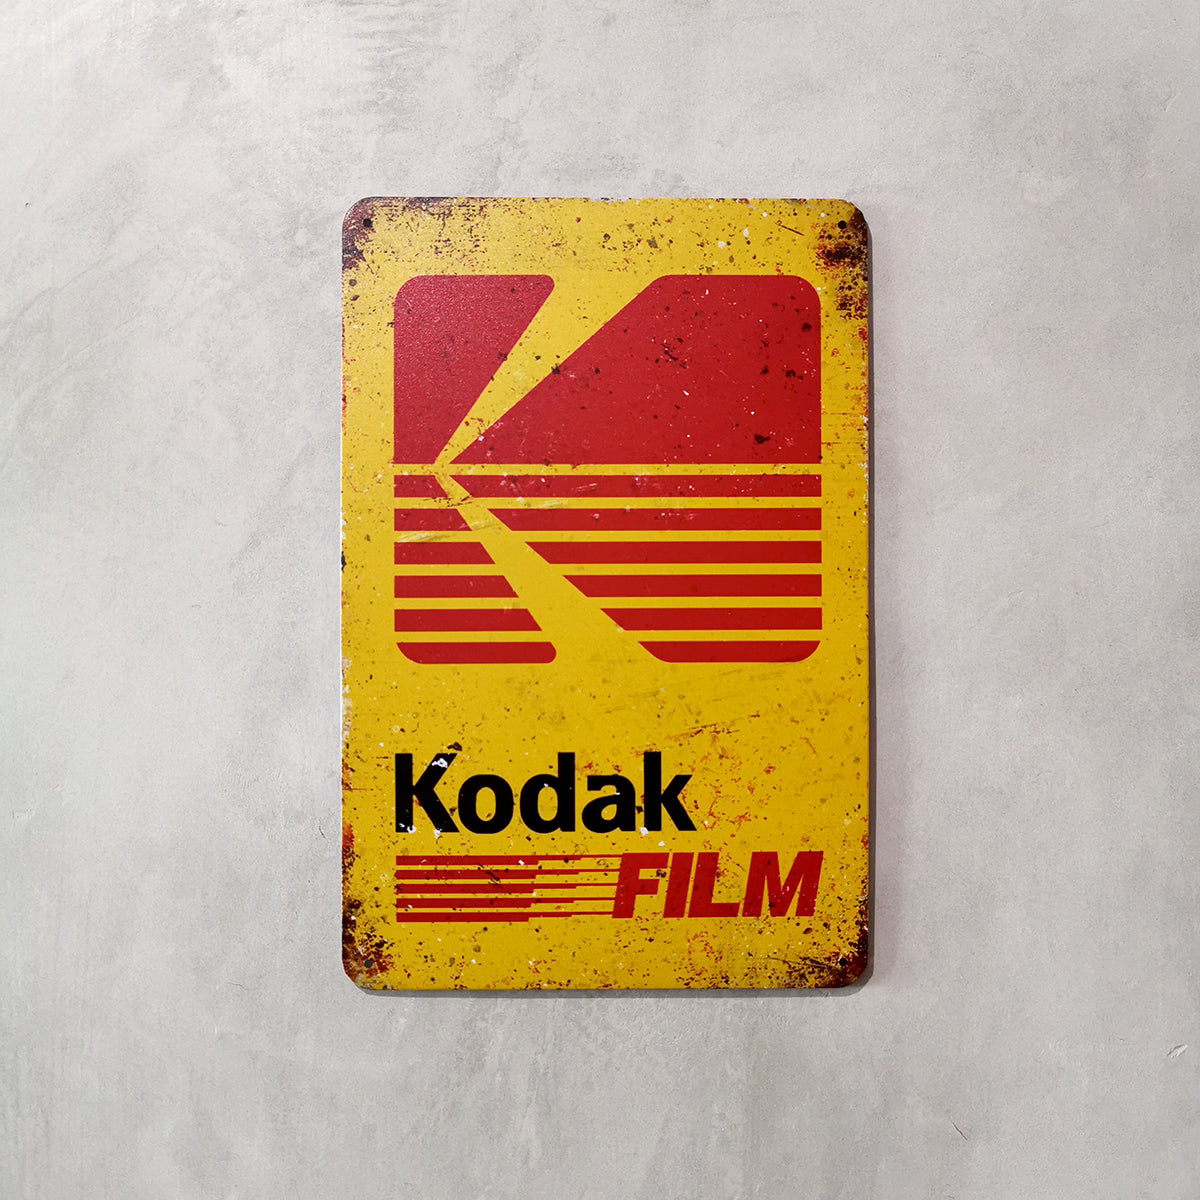 Tin Sign - Kodak Film Singapore - 8storeytree